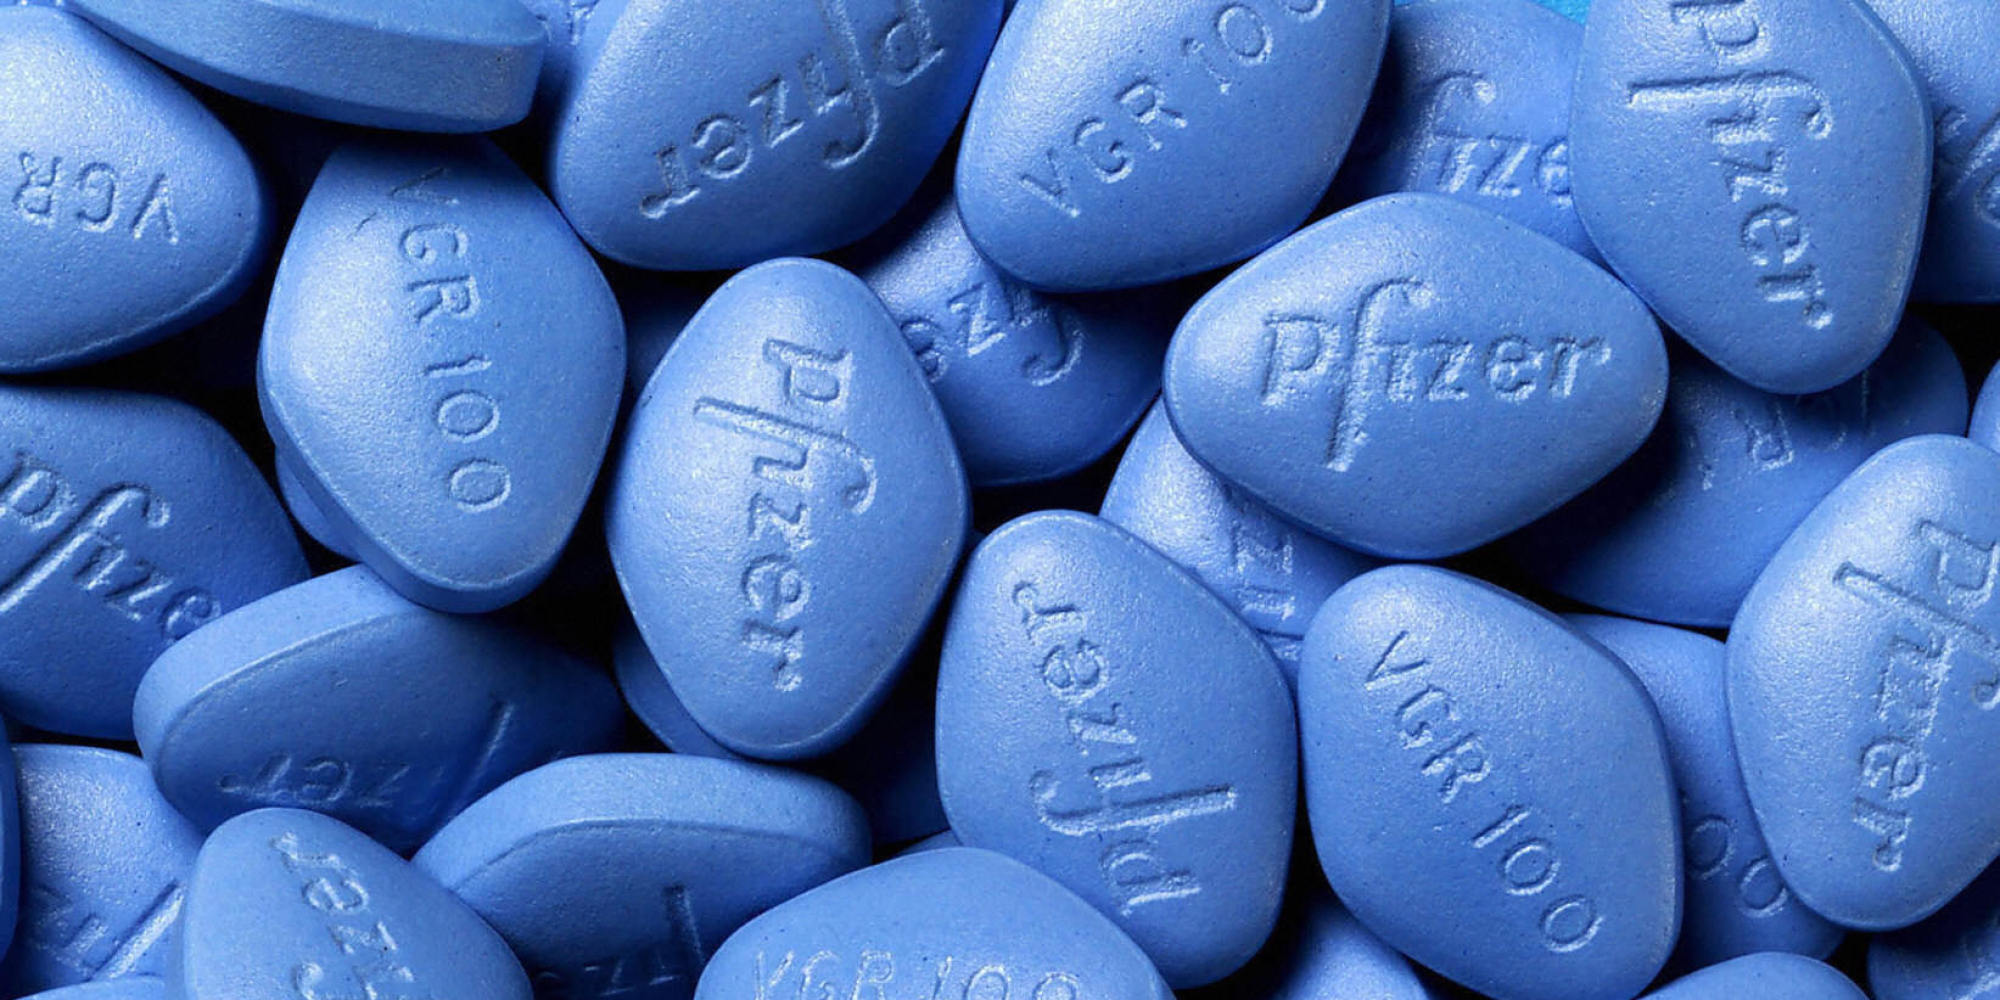 FILES-US-MEDICINE-PFIZER-VIAGRA